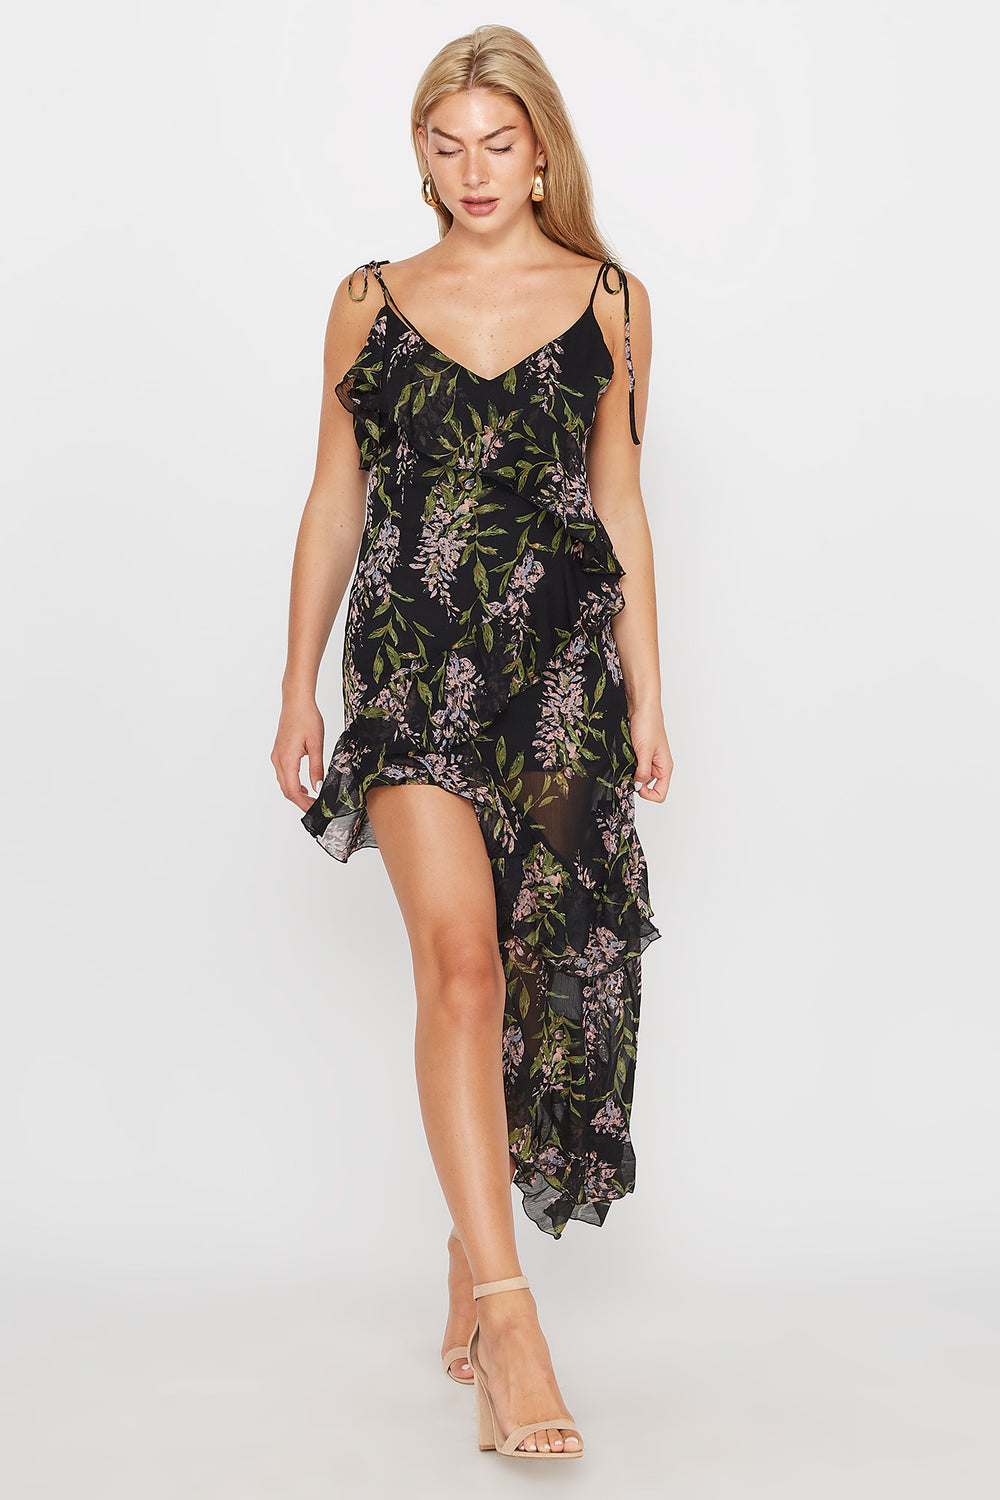 Chiffon Floral V-Neck Side High-Low Dress Black